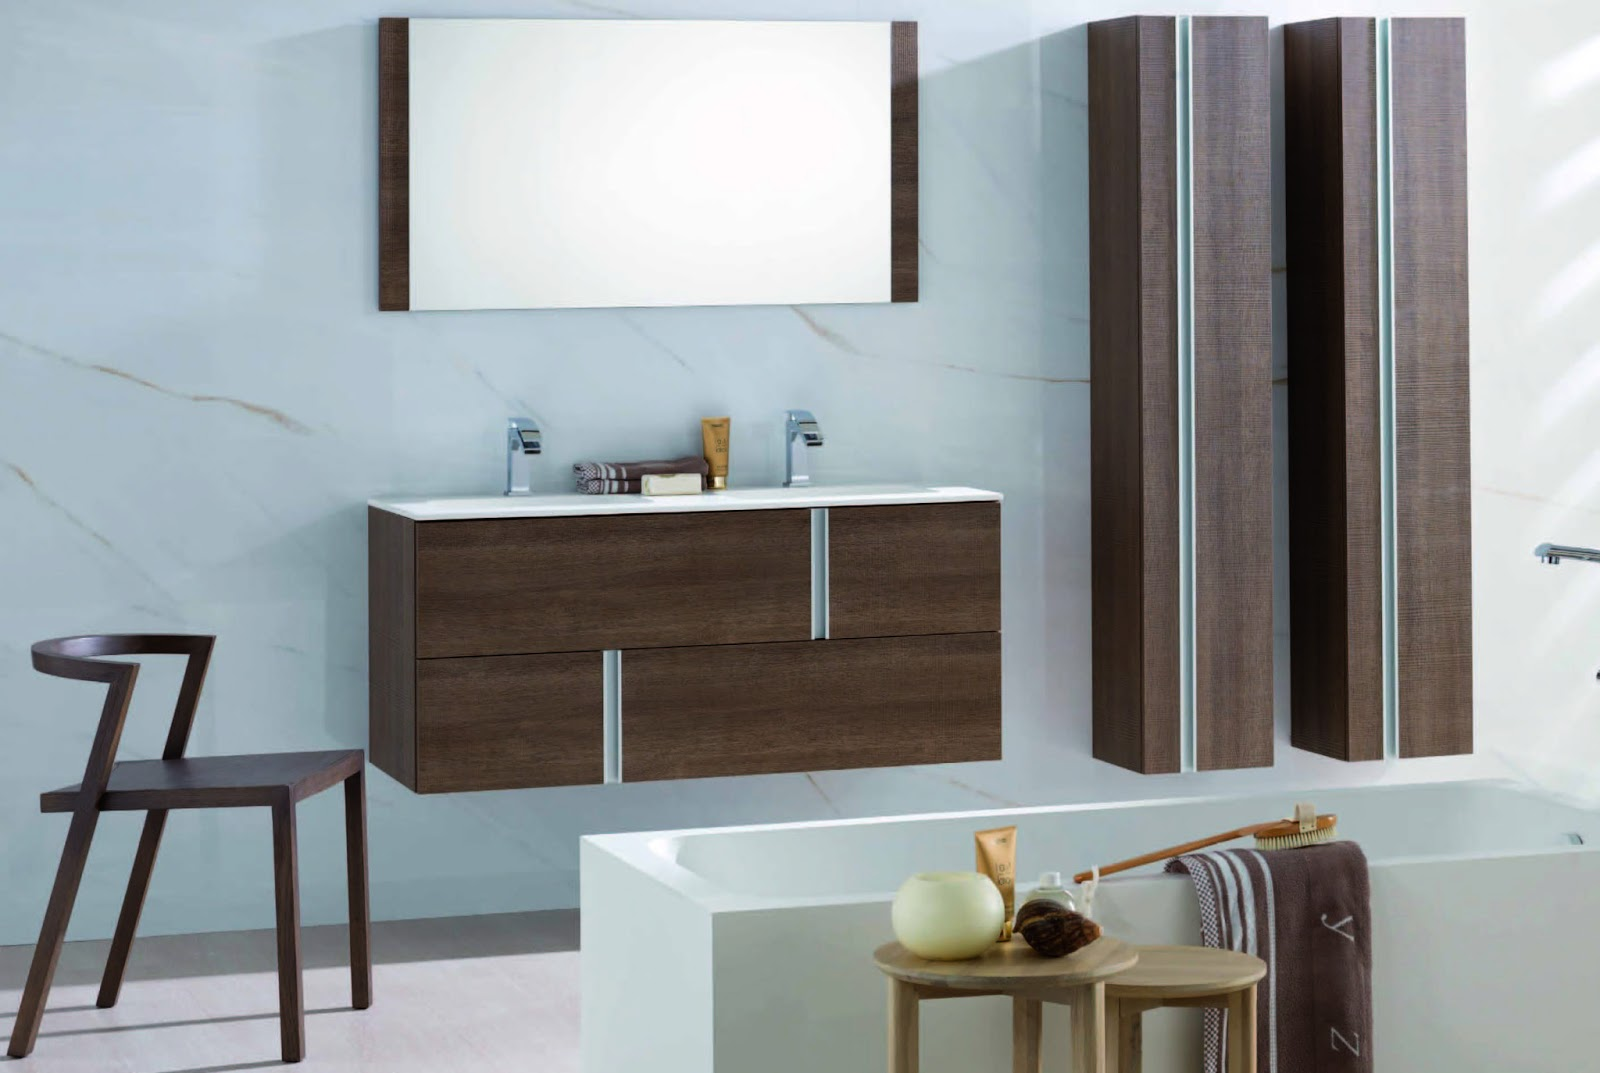 Porcelanosa International Febrero - Porcelanosa bathroom accessories